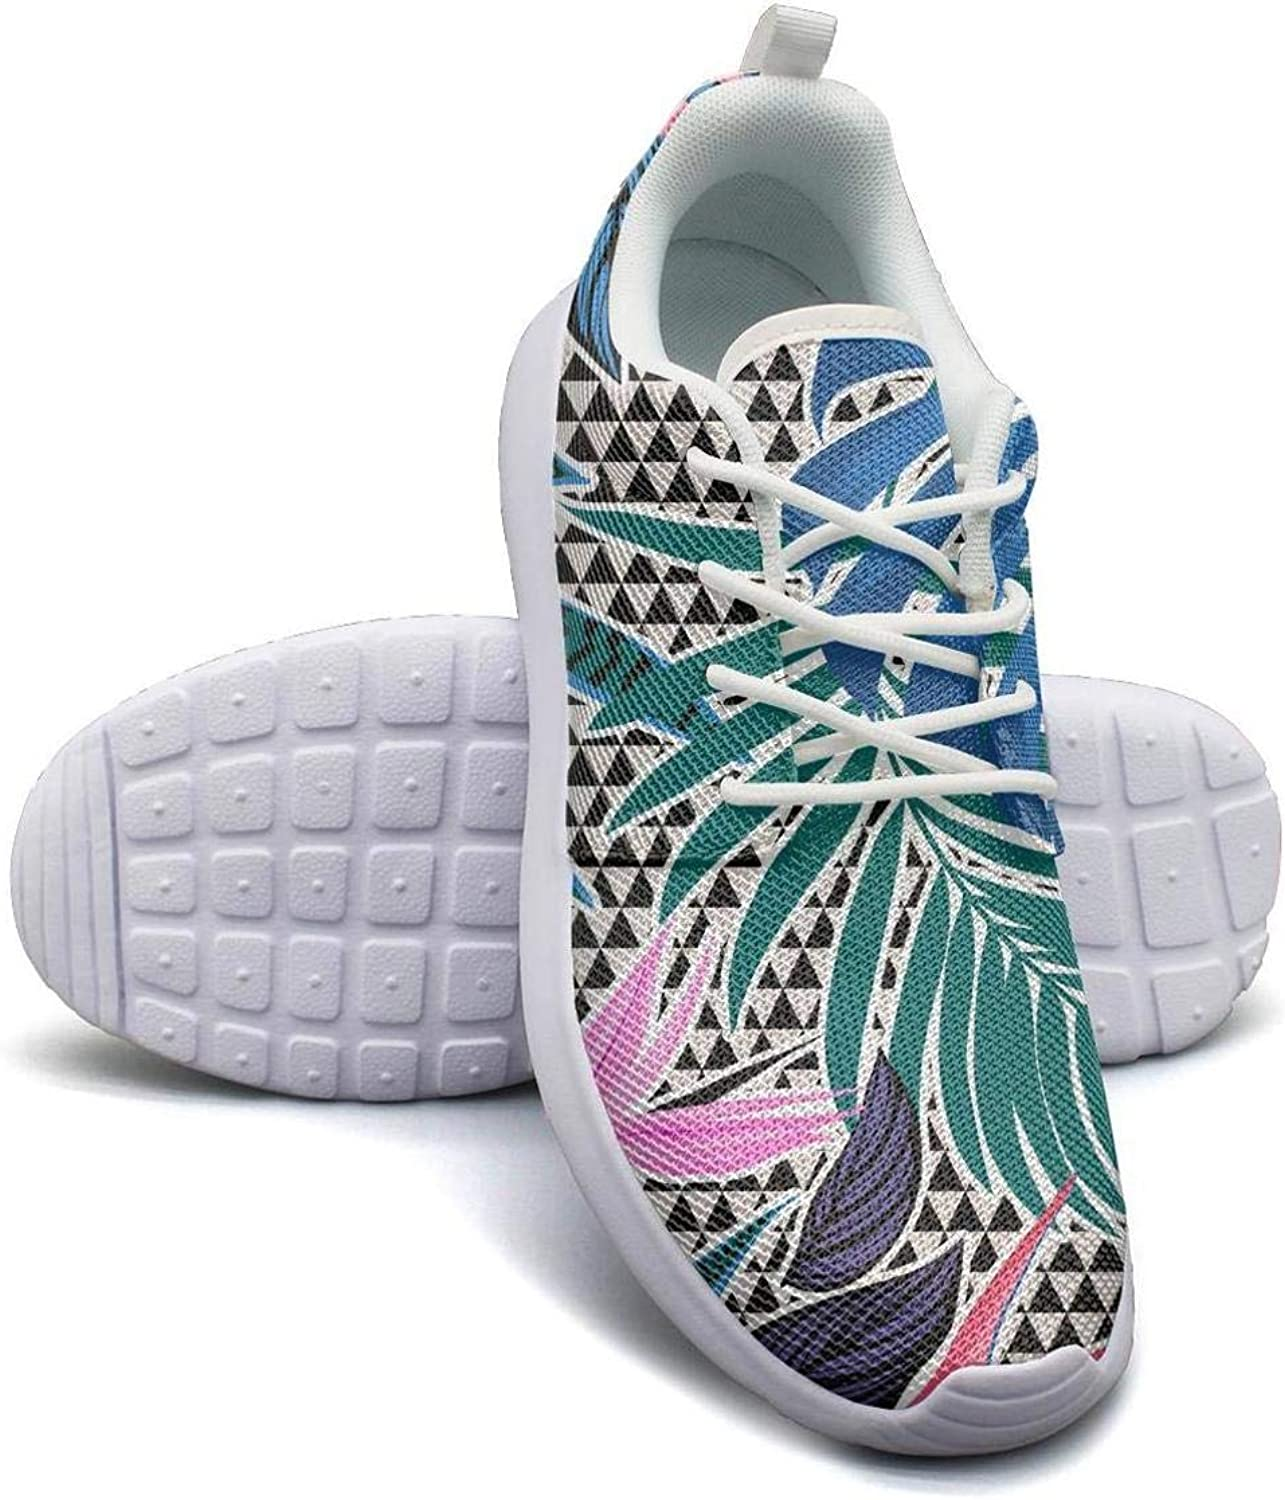 CHALi99 Comfort Woman Lightweight Mesh shoes Tropical Floral Monstera Fashion Sneakers Athletic Soft Sole